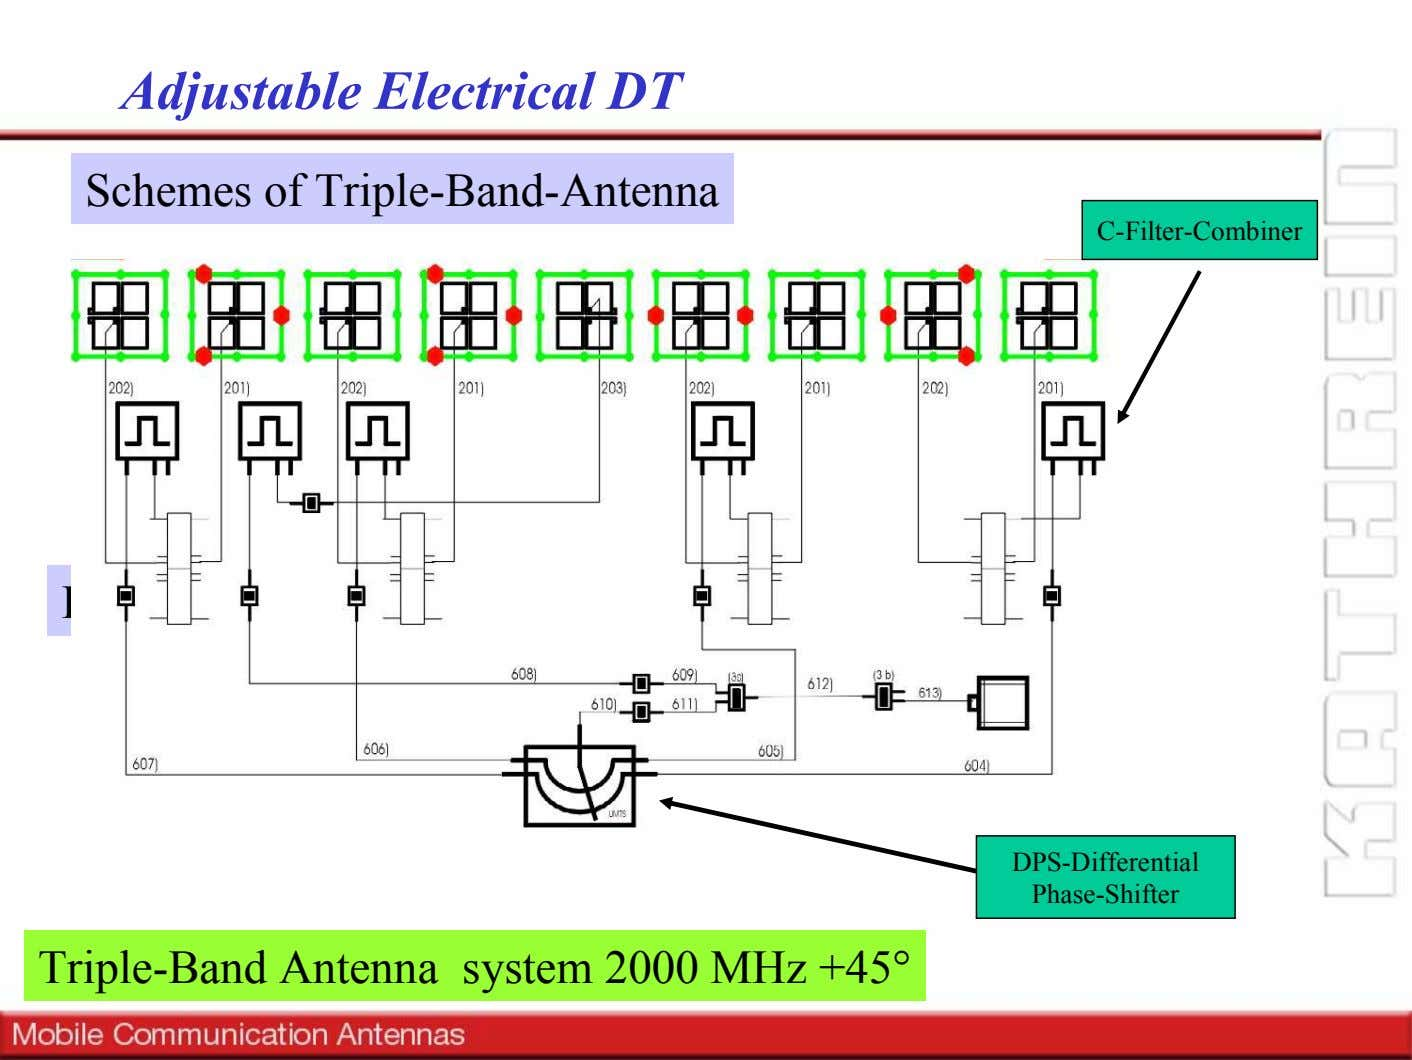 Adjustable Electrical DT Schemes of Triple-Band-Antenna C-Filter-Combiner Passive Differential Phase Shifter